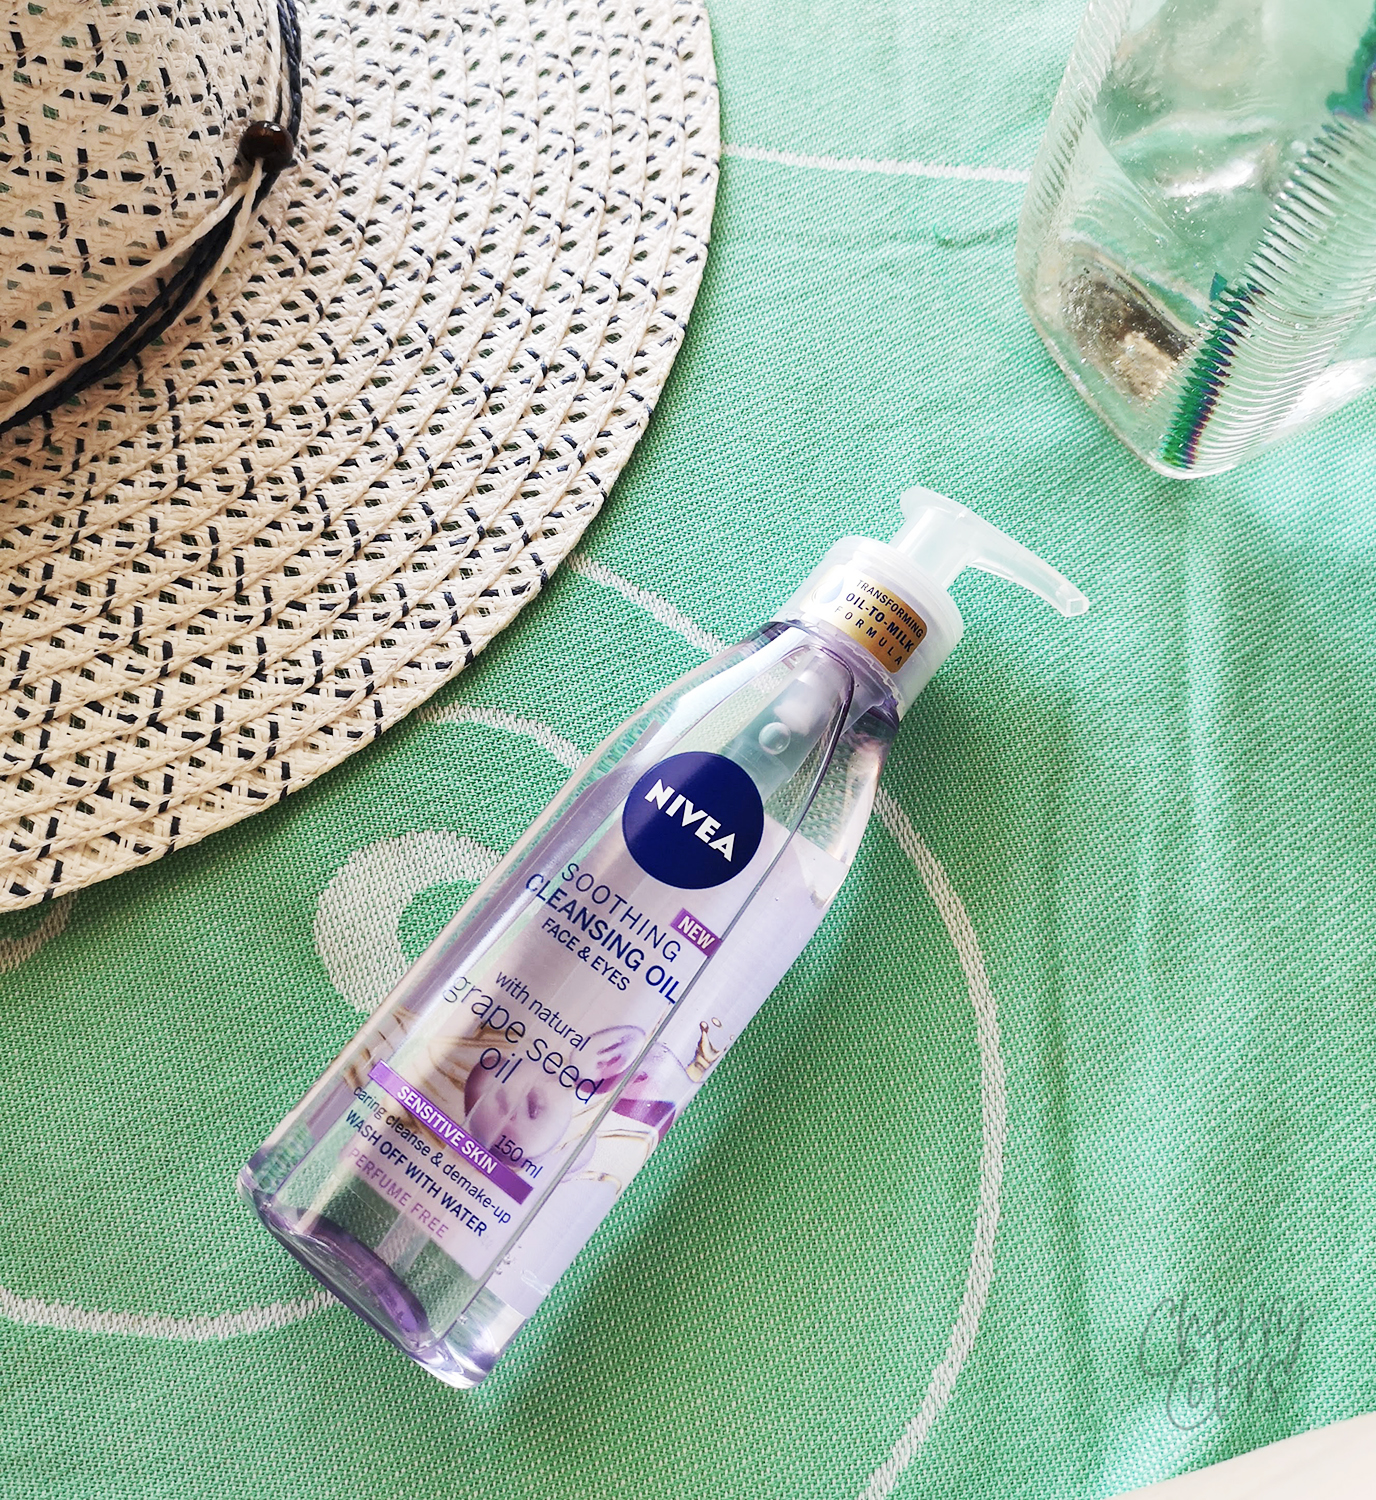 Nivea Grape Seed Soothing Cleansing Oil